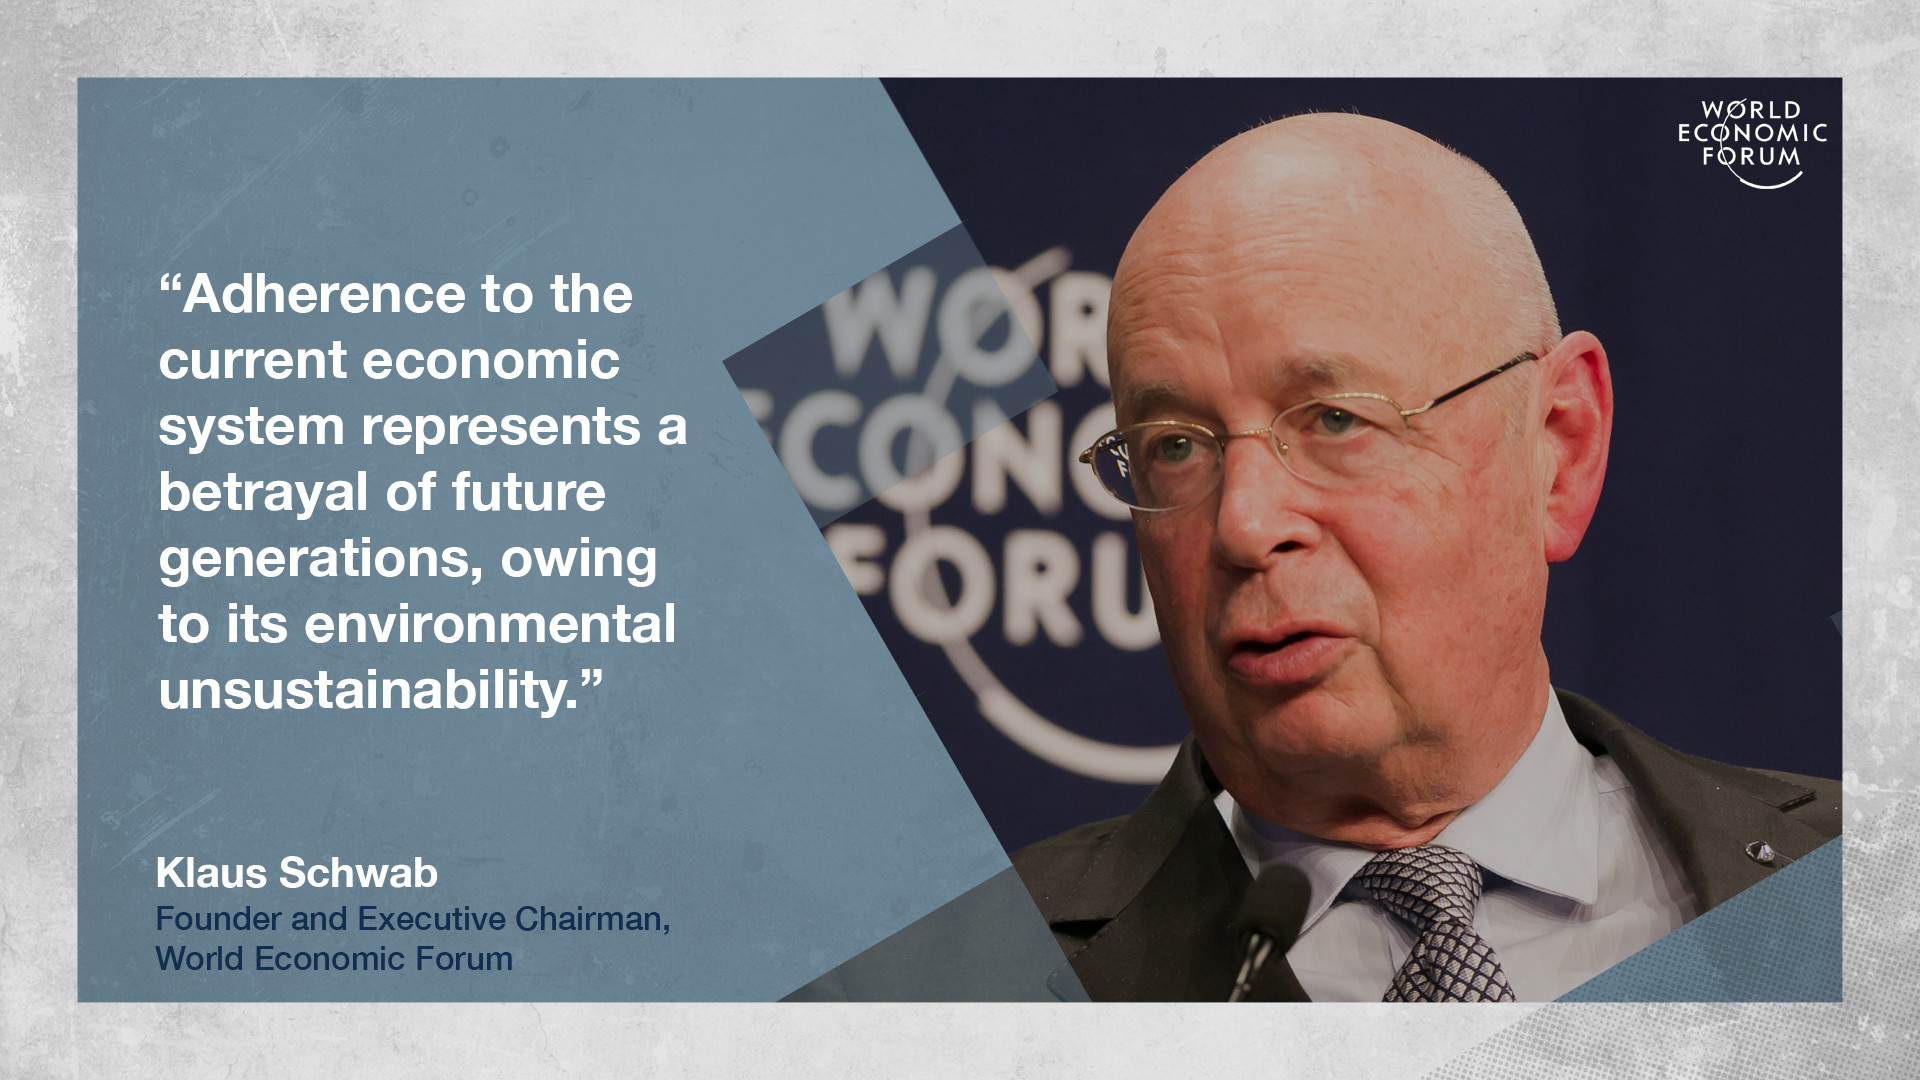 Klaus Schwab on the need for a sustainable cohesive world